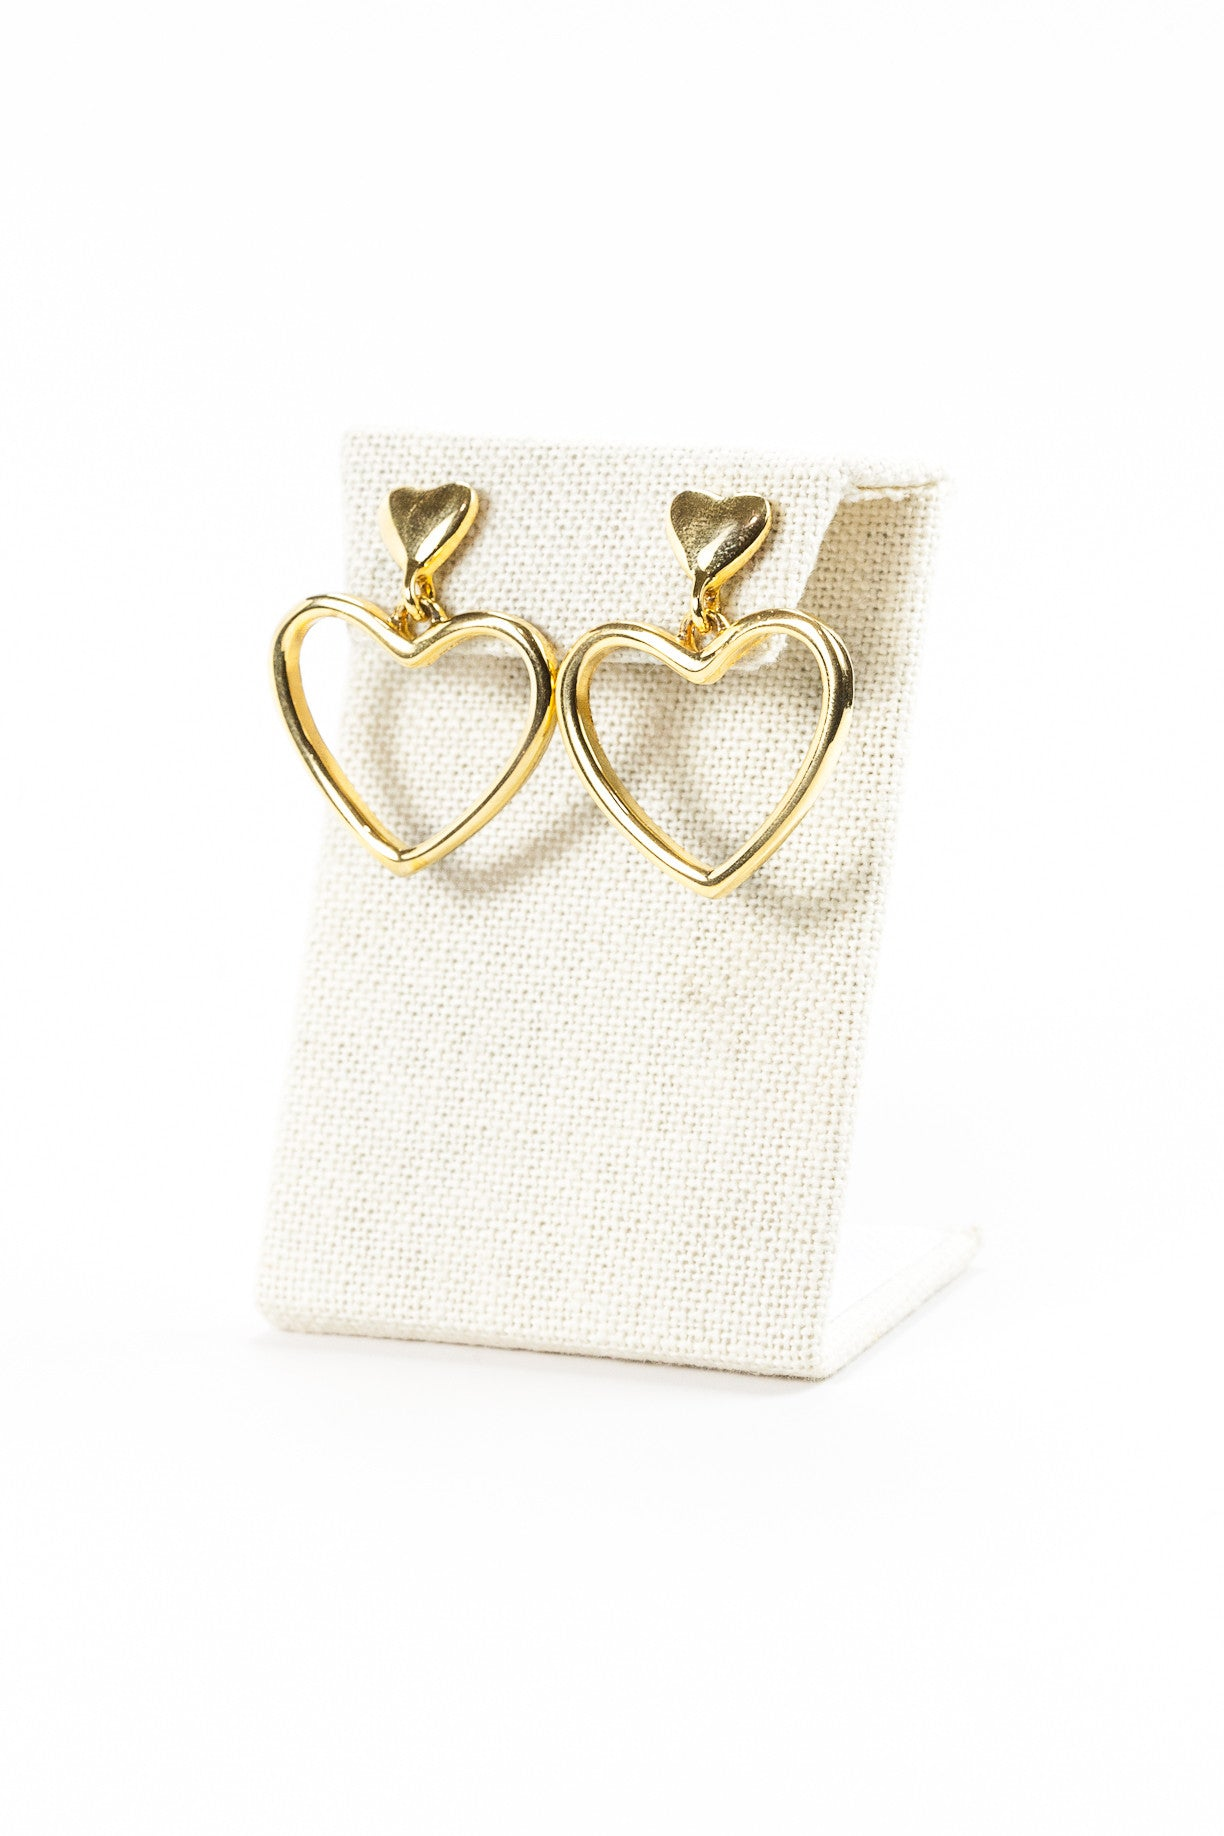 Vintage Anne Klein Heart Drop Earrings